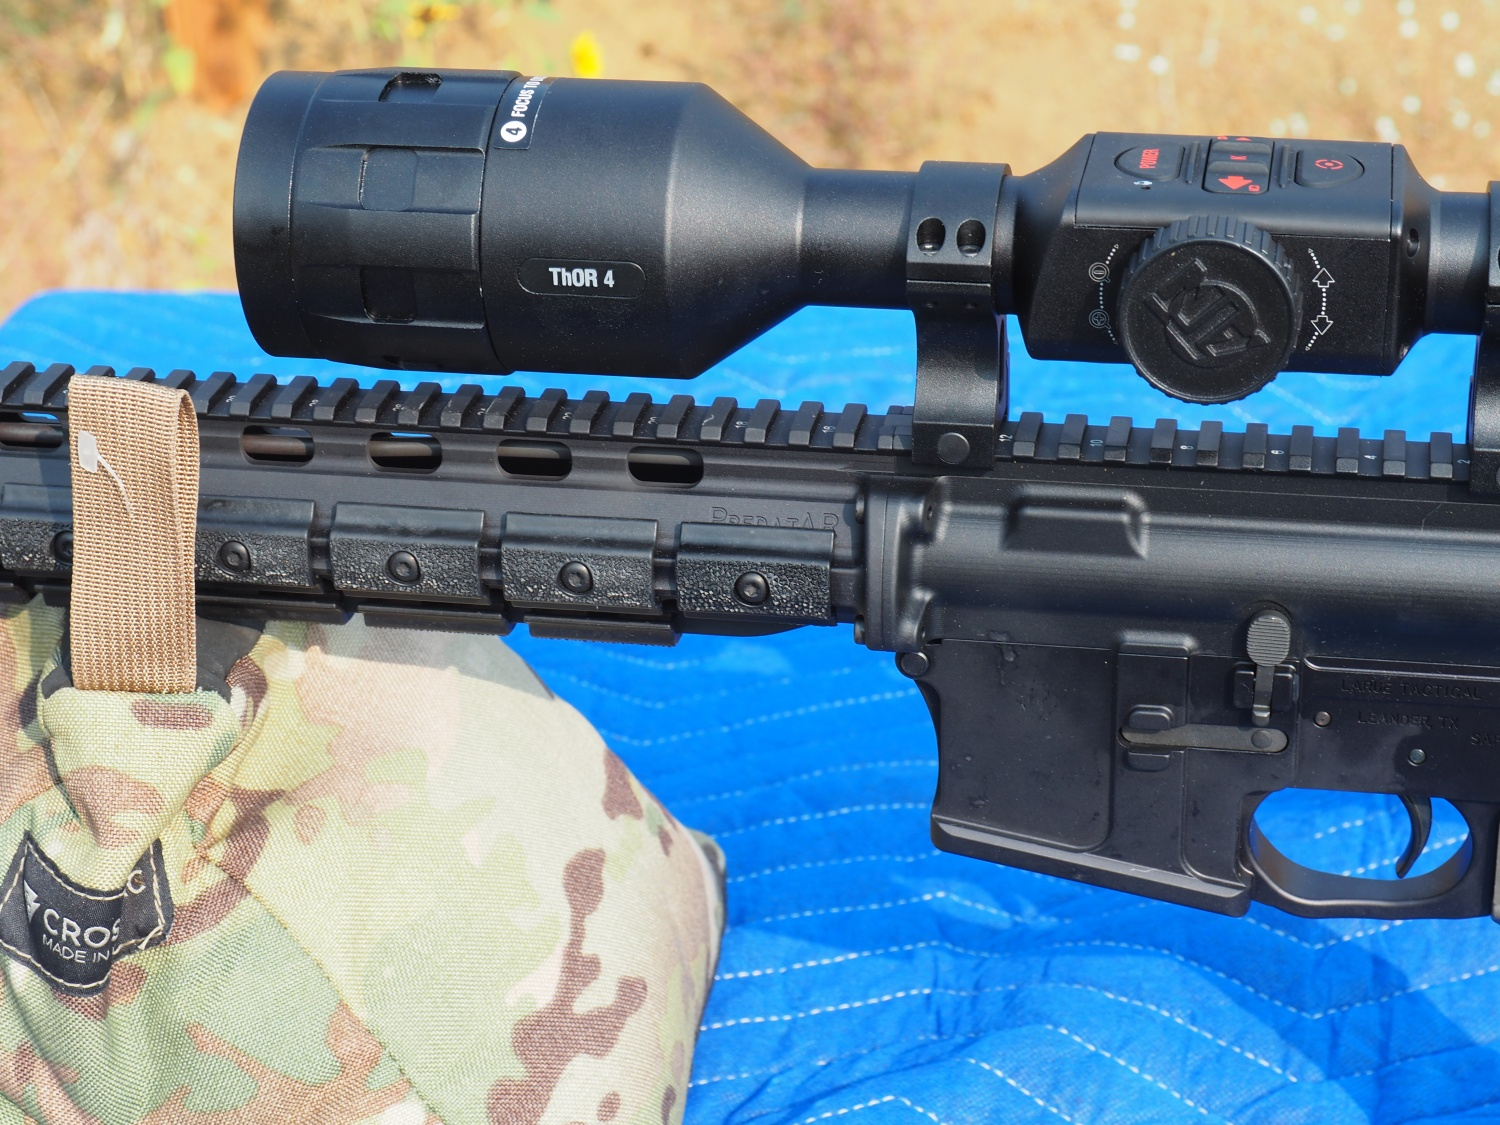 TFB Review: ATN ThOR 4 Thermal Scope-Red Hot Optic or Lukewarm Glass